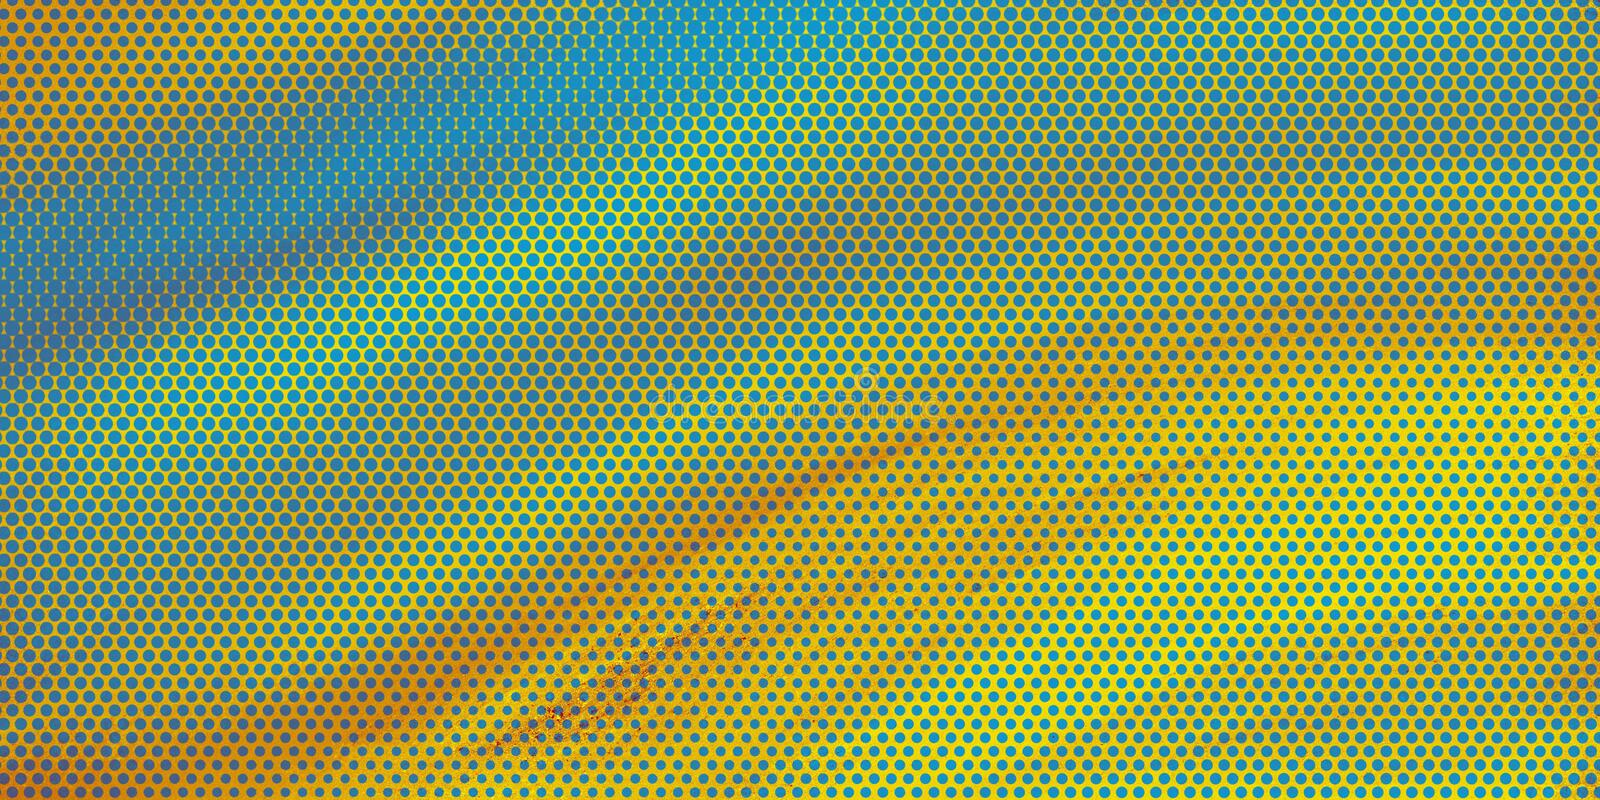 Artsy background design with blue and yellow pop art halftone pattern effect with flowing texture and colors of blue green yellow vector illustration